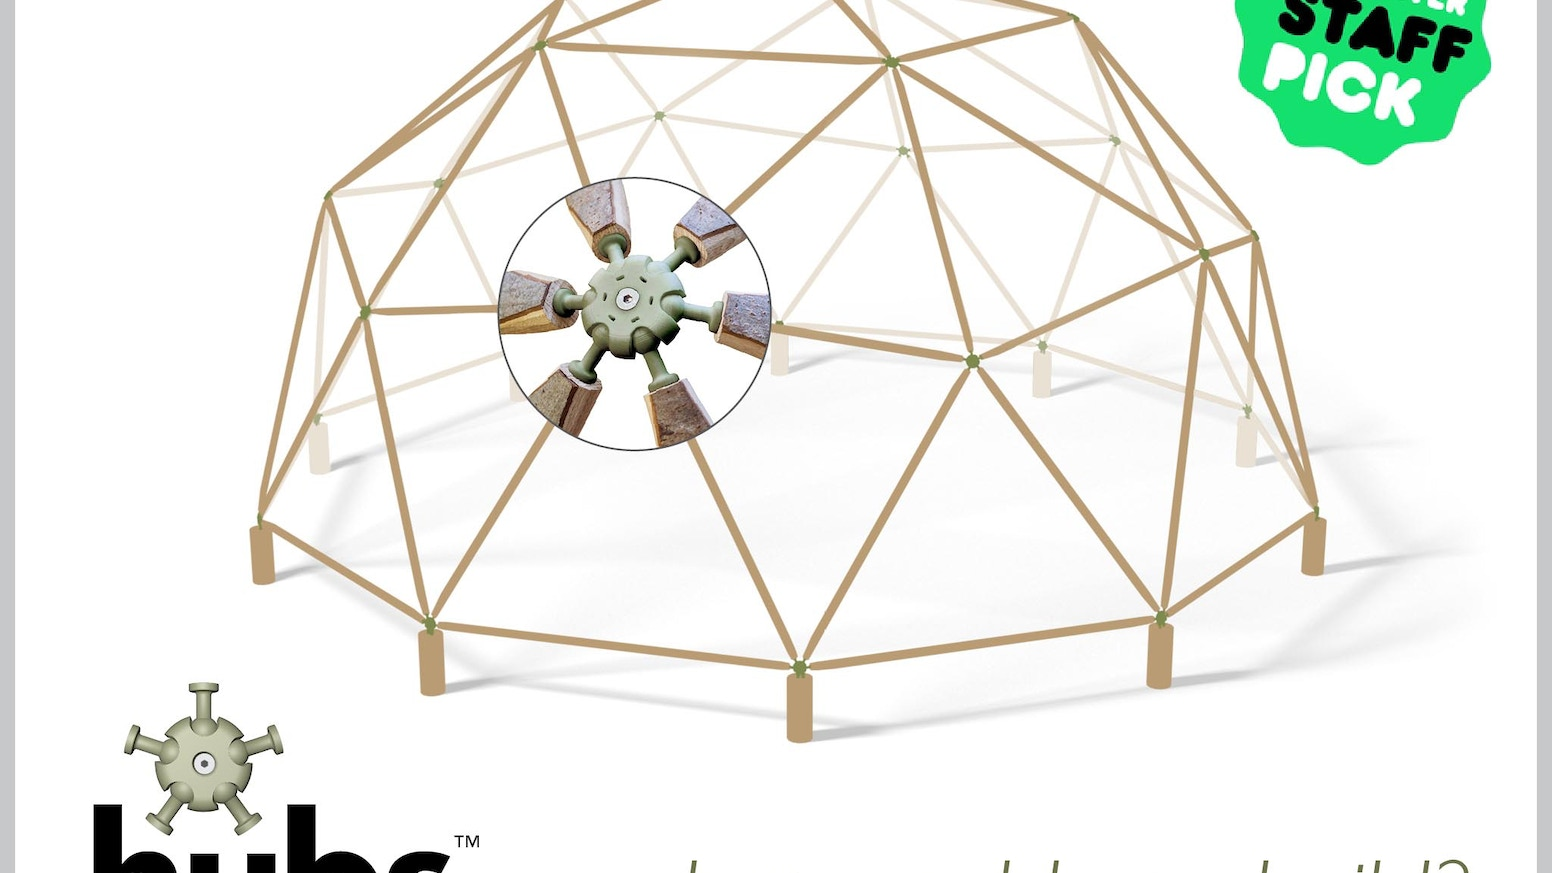 hubs = geodesic domes made simple by Chris Jordan and Mike